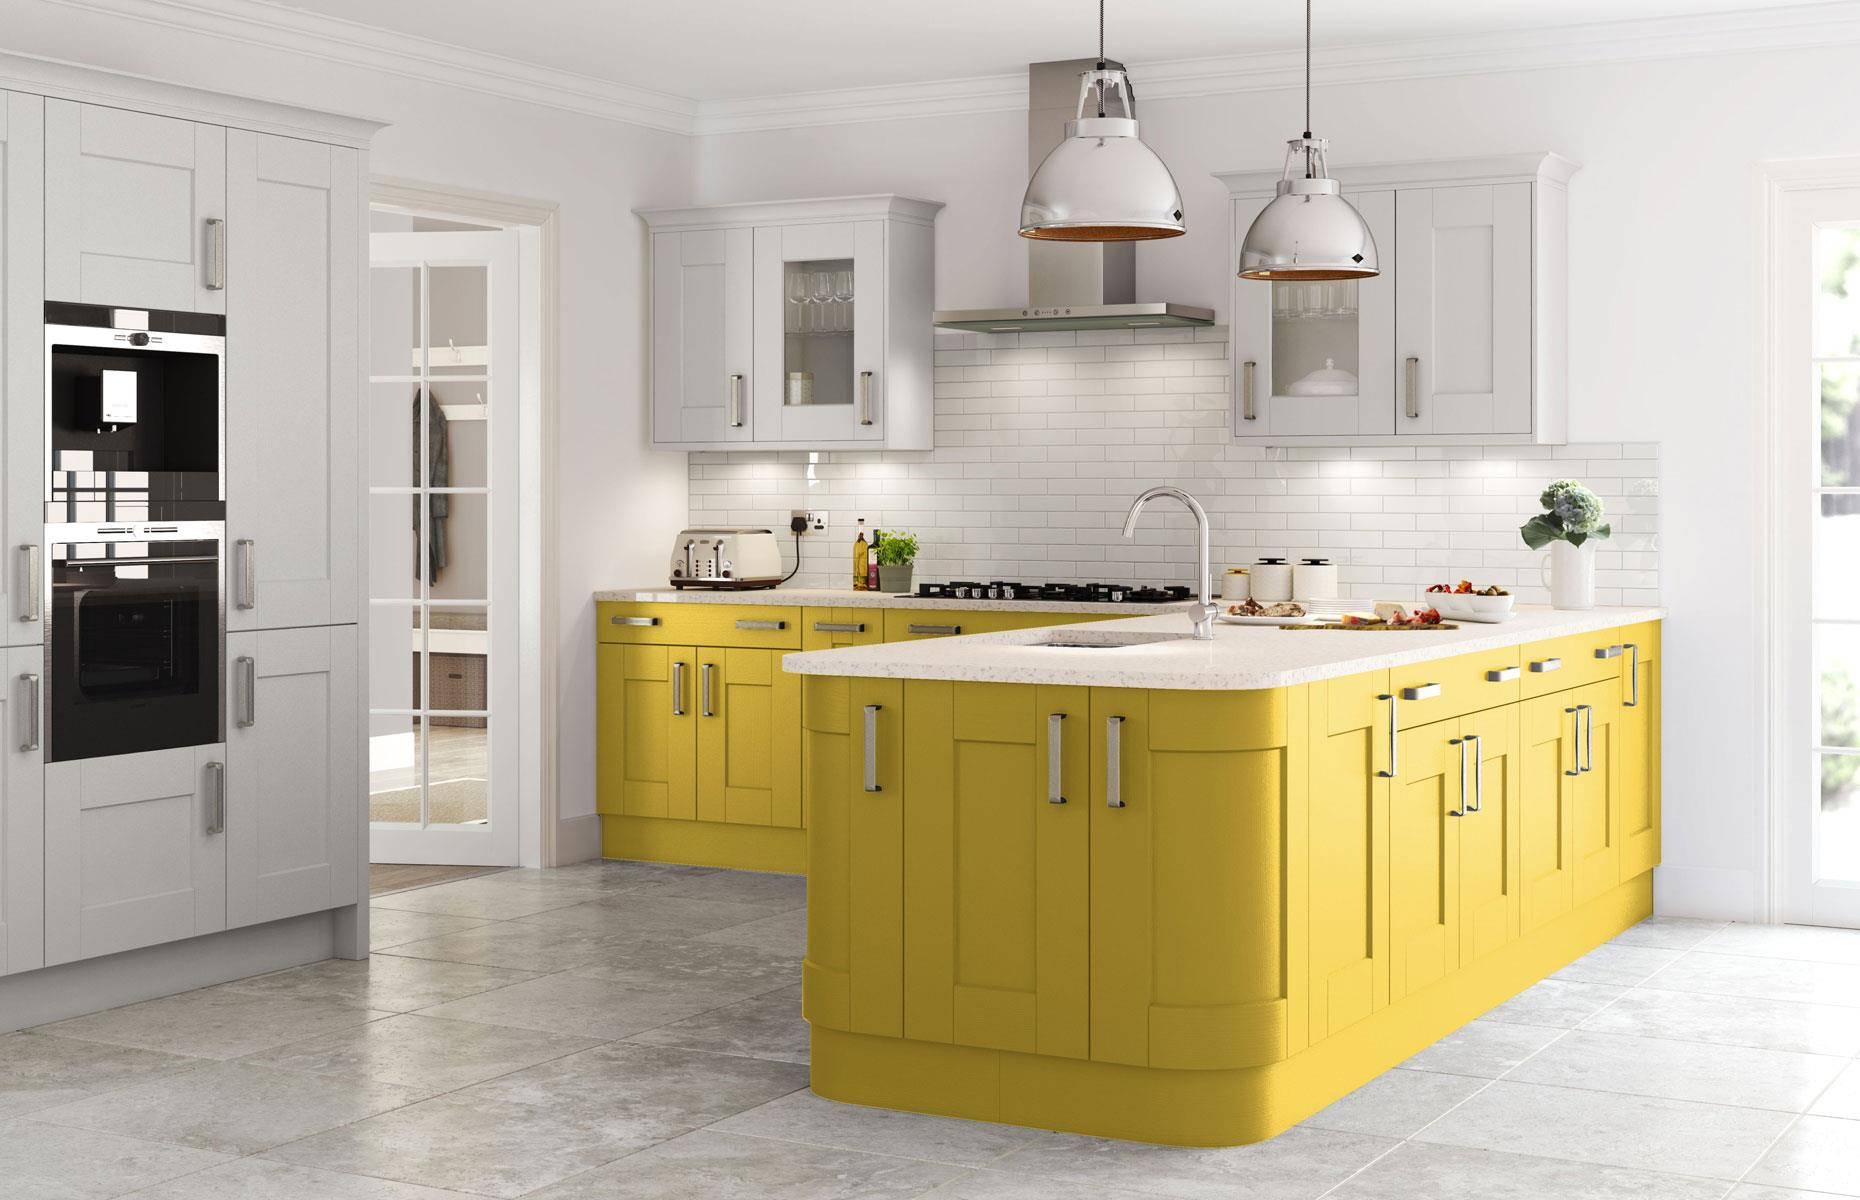 Bright ideas for colourful kitchens | property.com on golden yellow kitchen ideas, bright country kitchen ideas, yellow kitchen decorating ideas, yellow kitchen wall ideas, bright yellow room ideas, bright yellow interiors, bright yellow fashion, gray and yellow kitchen ideas, bright yellow bathroom ideas, bright yellow kitchen decorations, yellow kitchen color ideas, bright yellow living rooms, blue and yellow kitchen ideas, lemon yellow kitchen ideas, yellow country kitchen ideas, soft yellow kitchen ideas, bright yellow color, bright yellow dining room, bright yellow walls, bright yellow laundry rooms,